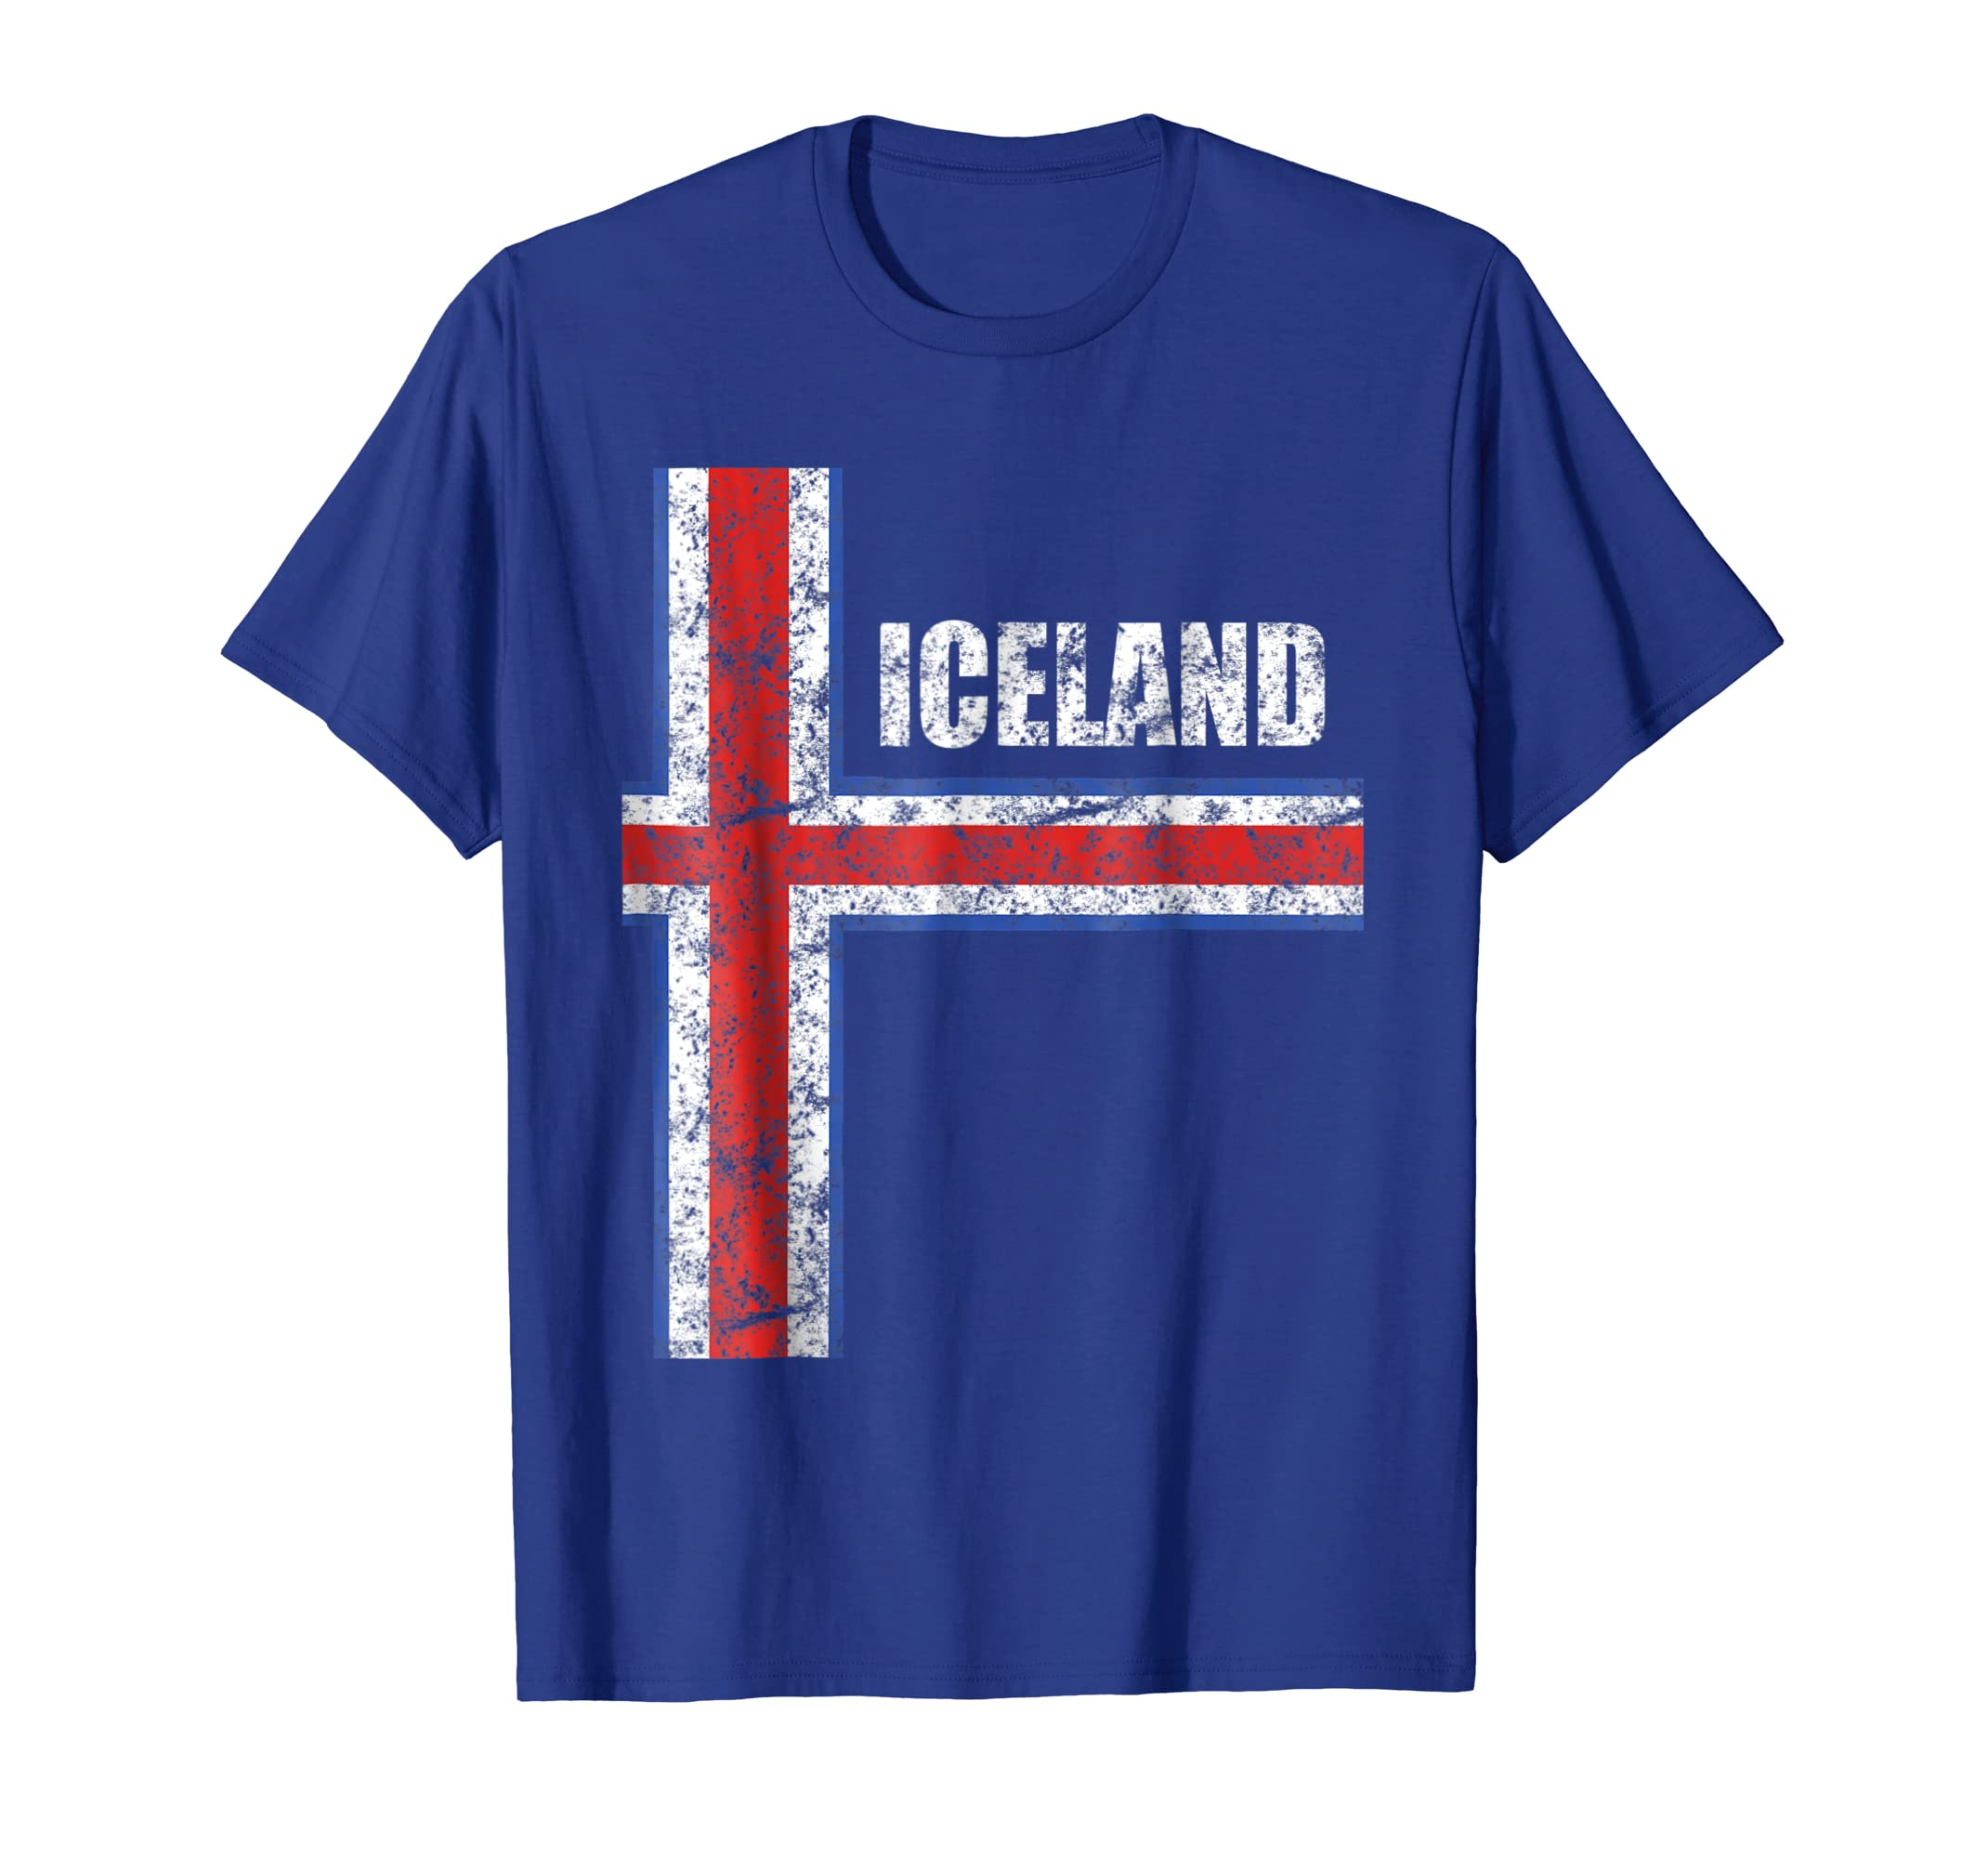 b6125b632 Amazon.com: Iceland Soccer Jersey Shirt Vintage Style Kid Size Available:  Clothing